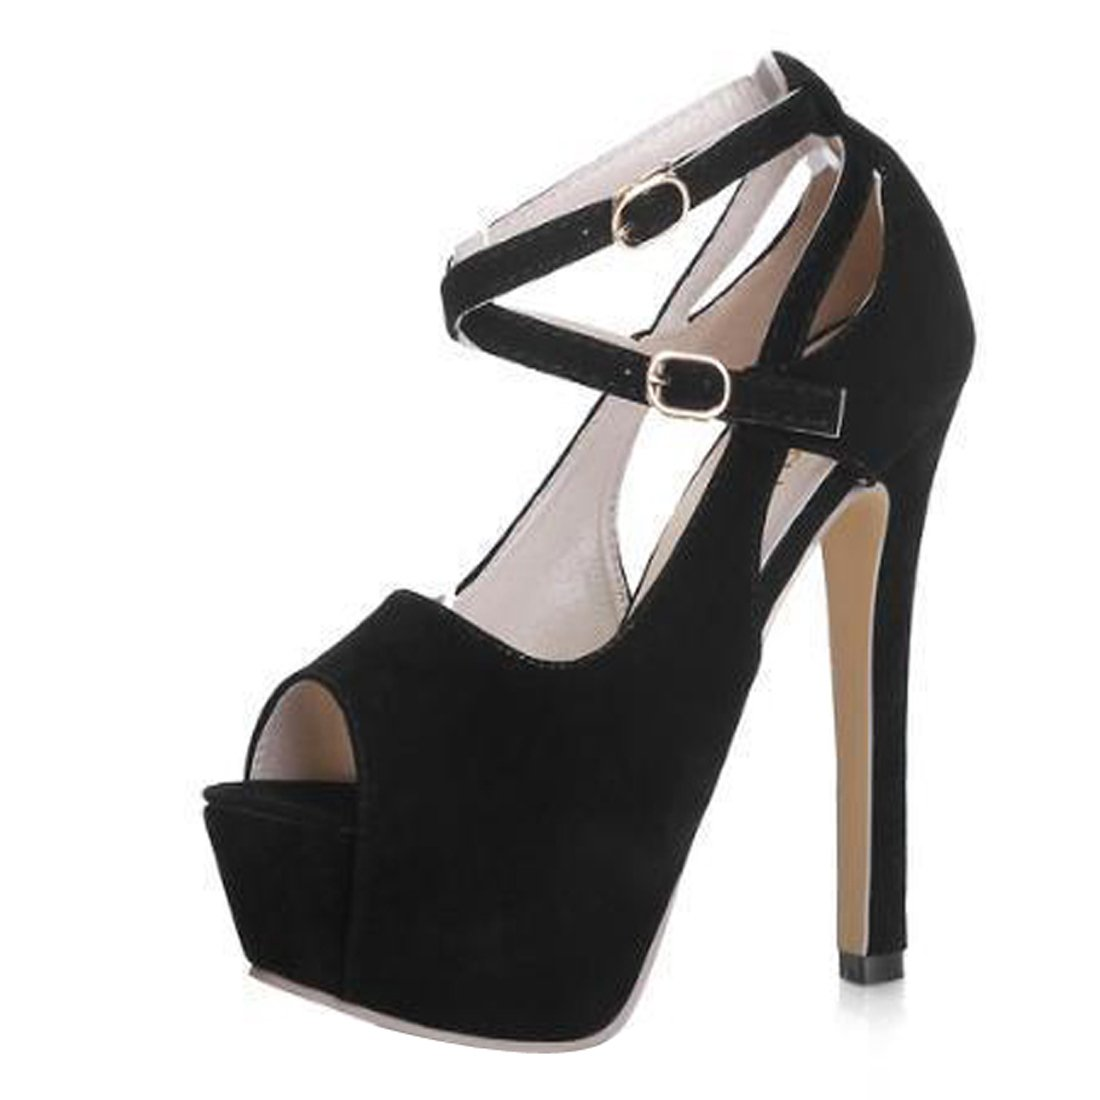 Gaorui Women Girl Peep Toe Ankle Strap Stiletto Shoes High Heel Platform Buckle Sandals